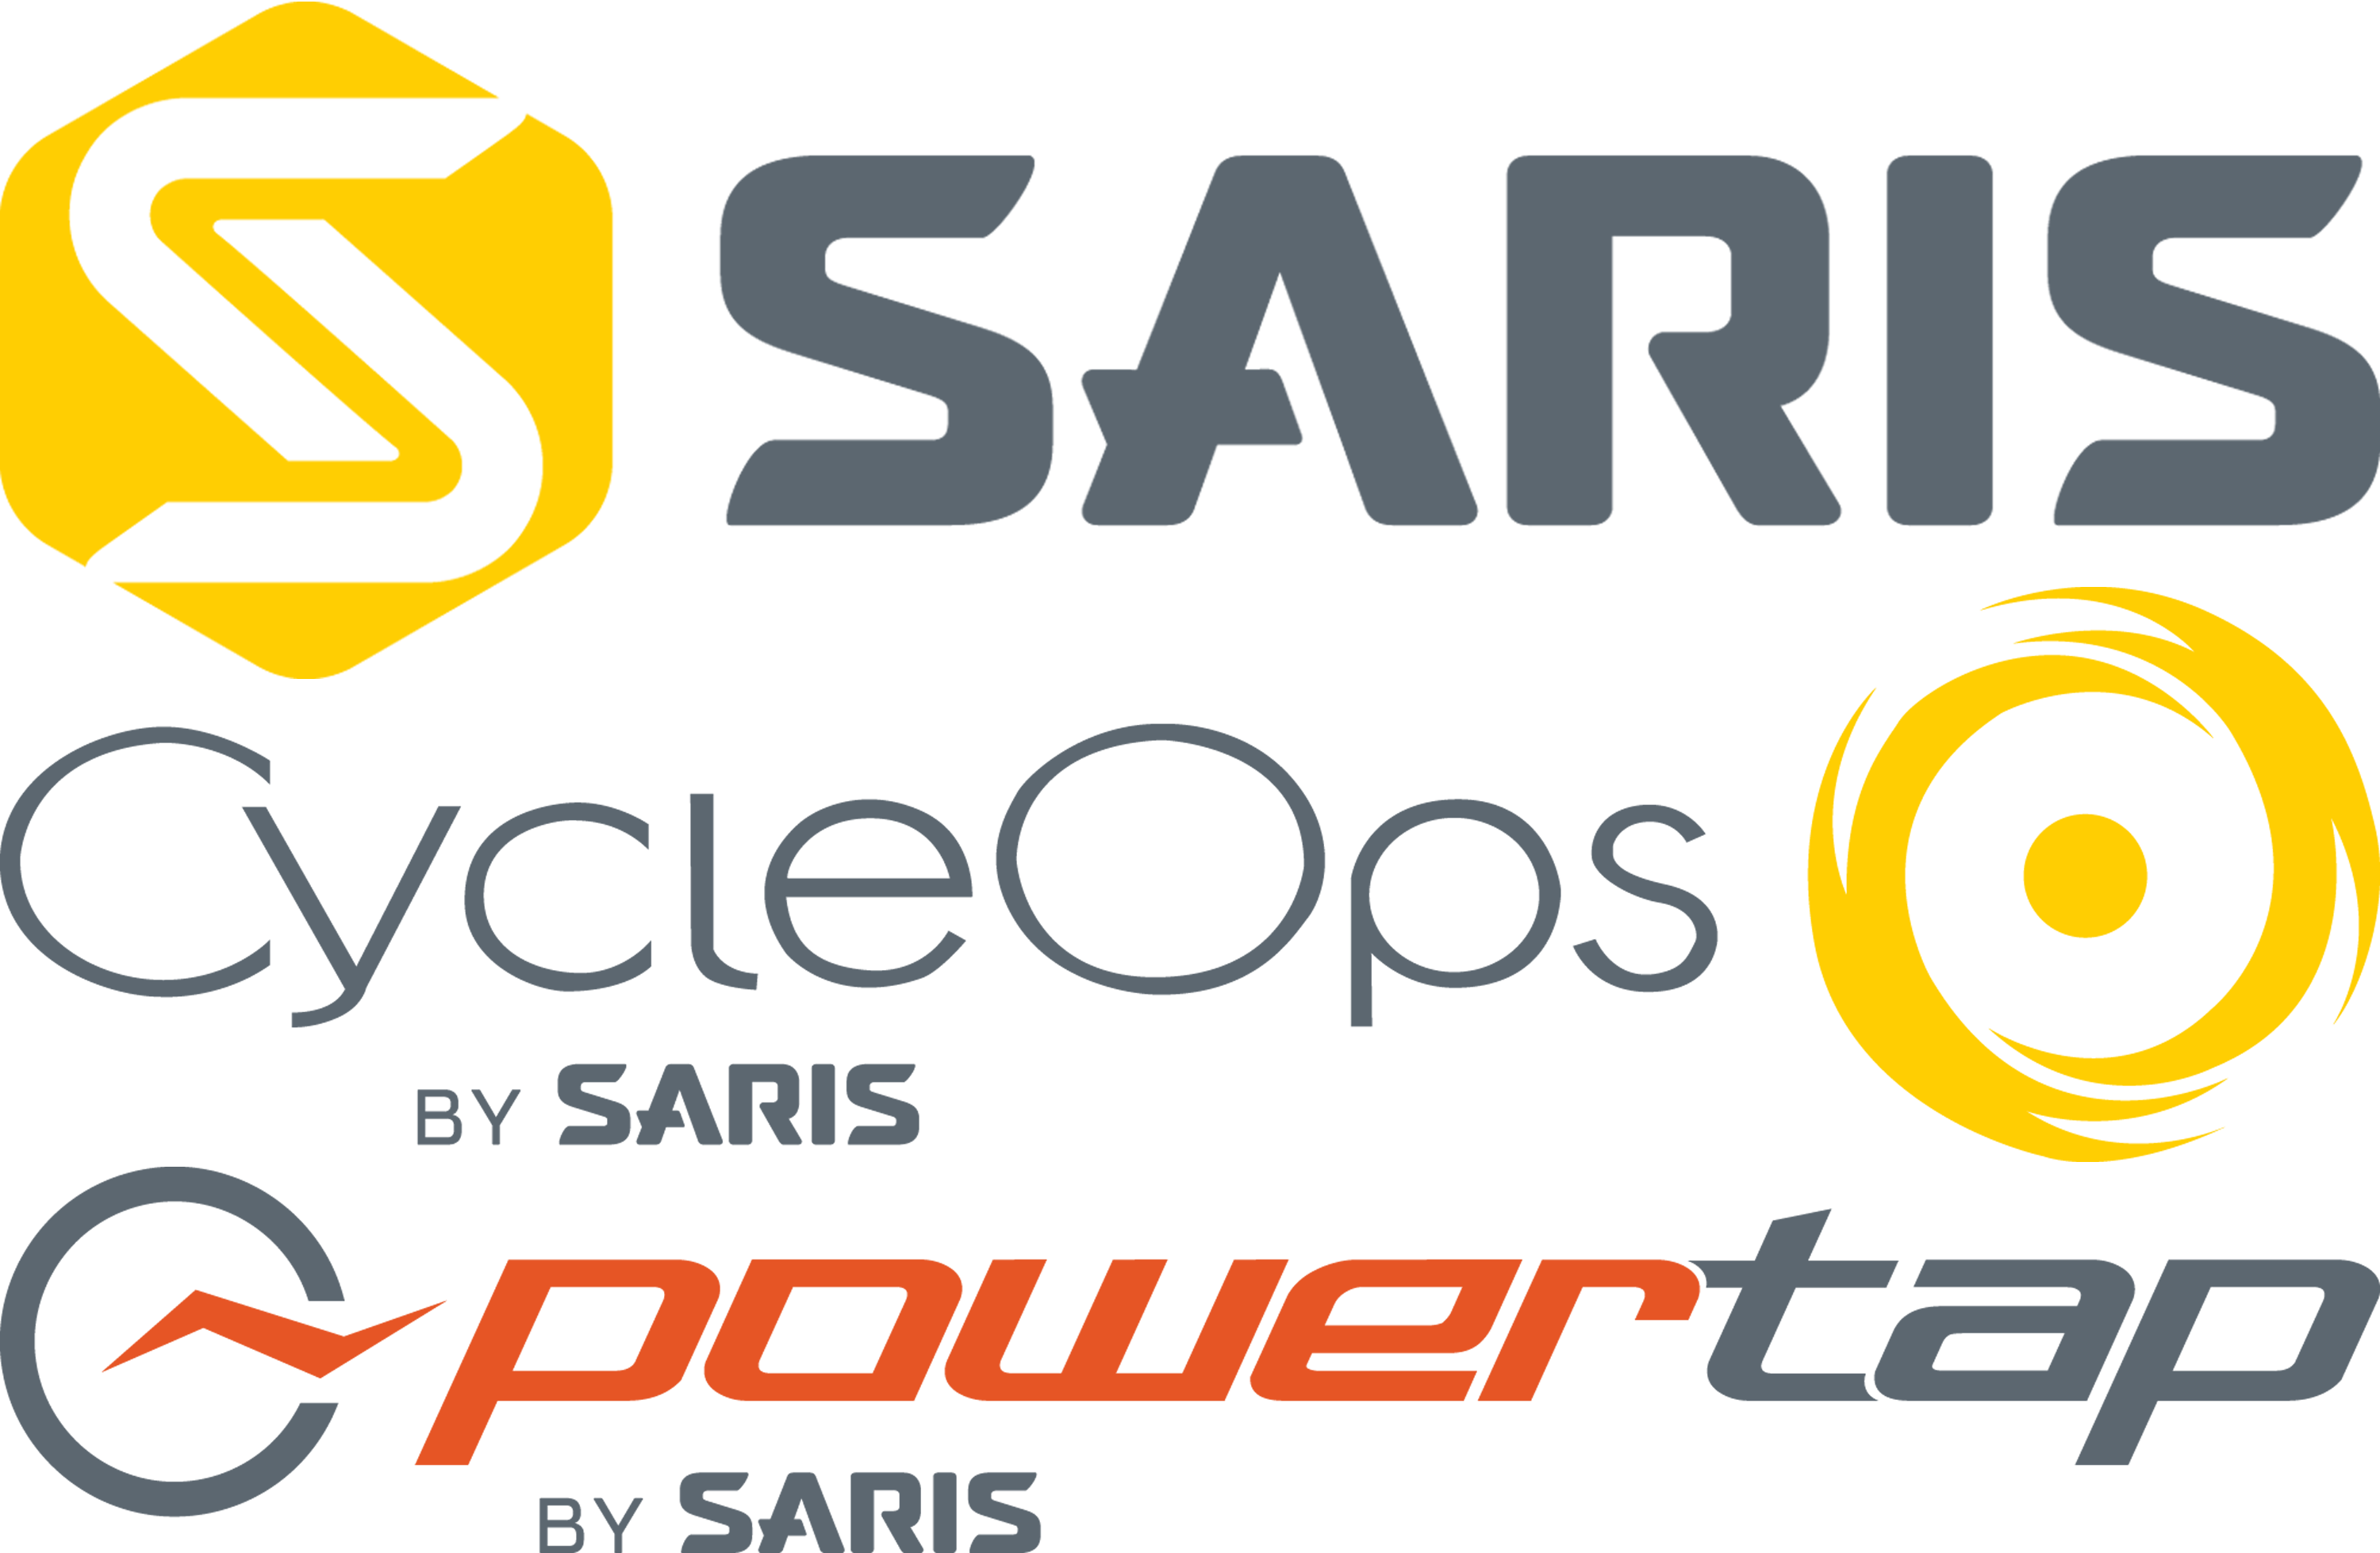 Saris, CycleOps, and PowerTap Logos